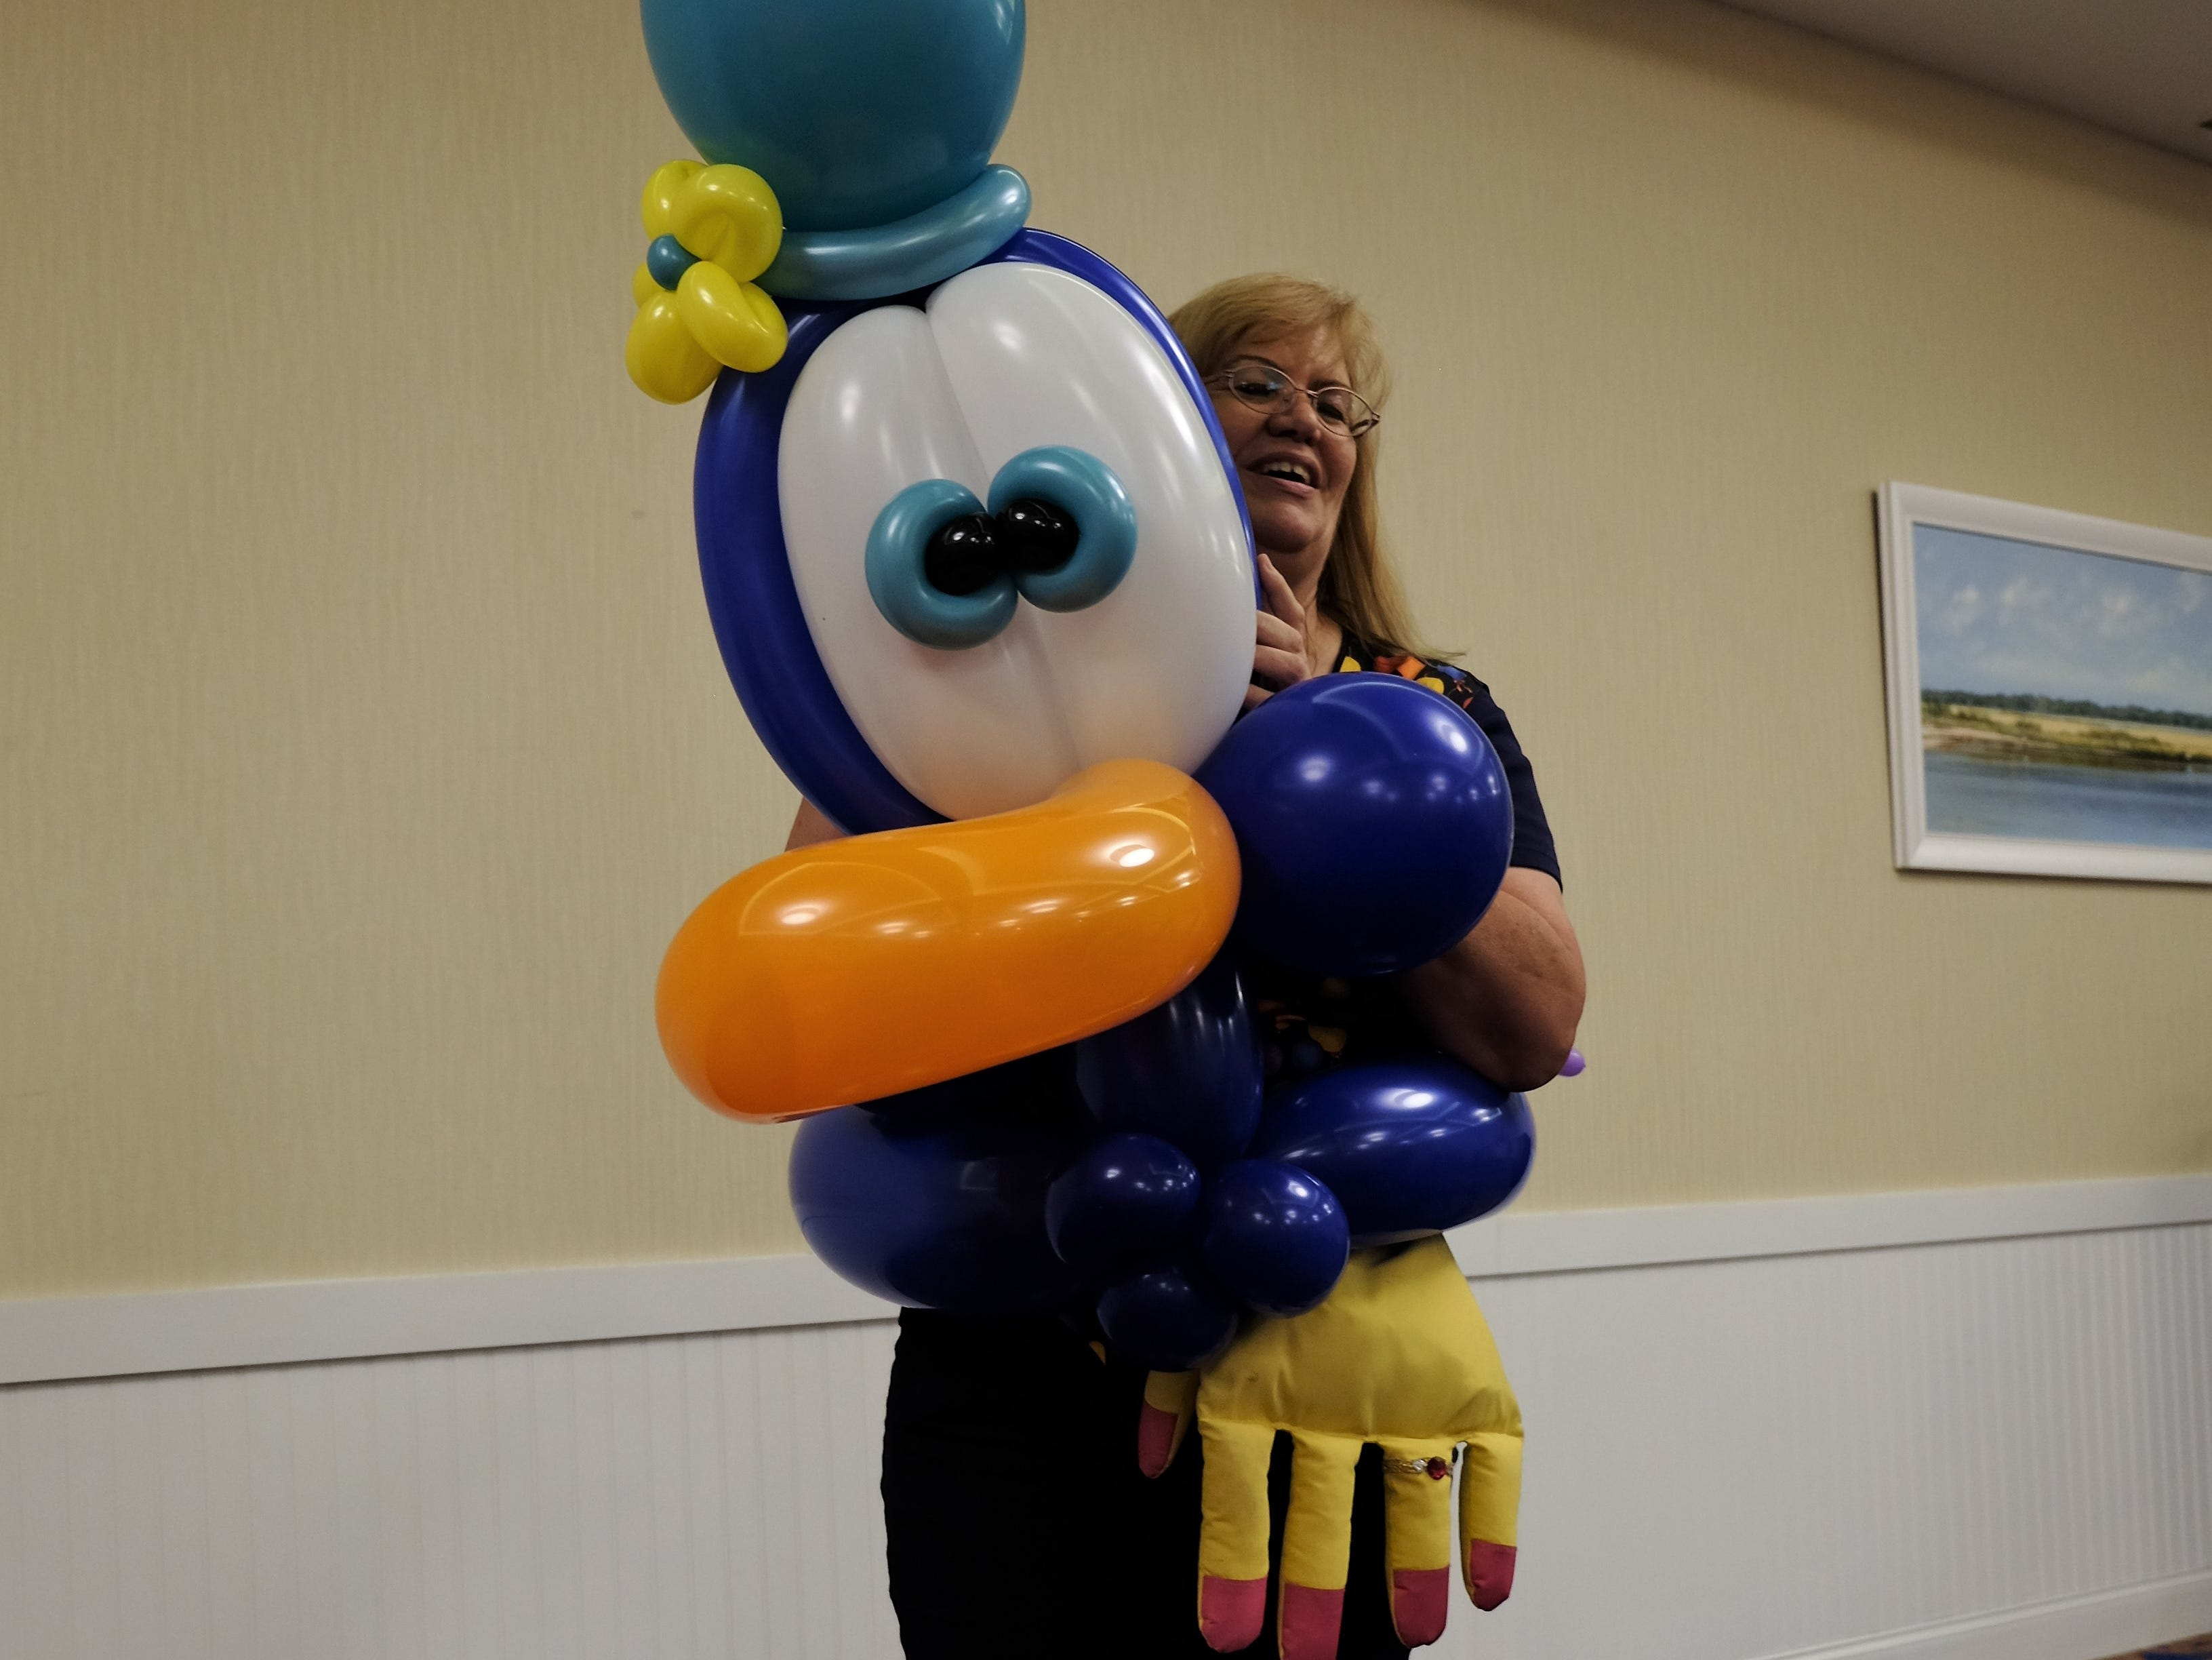 Renate McIntosh, an entertainer, settles into one of her favorite balloon creations on Aug. 15 at Bethany Beach Ocean Suites.